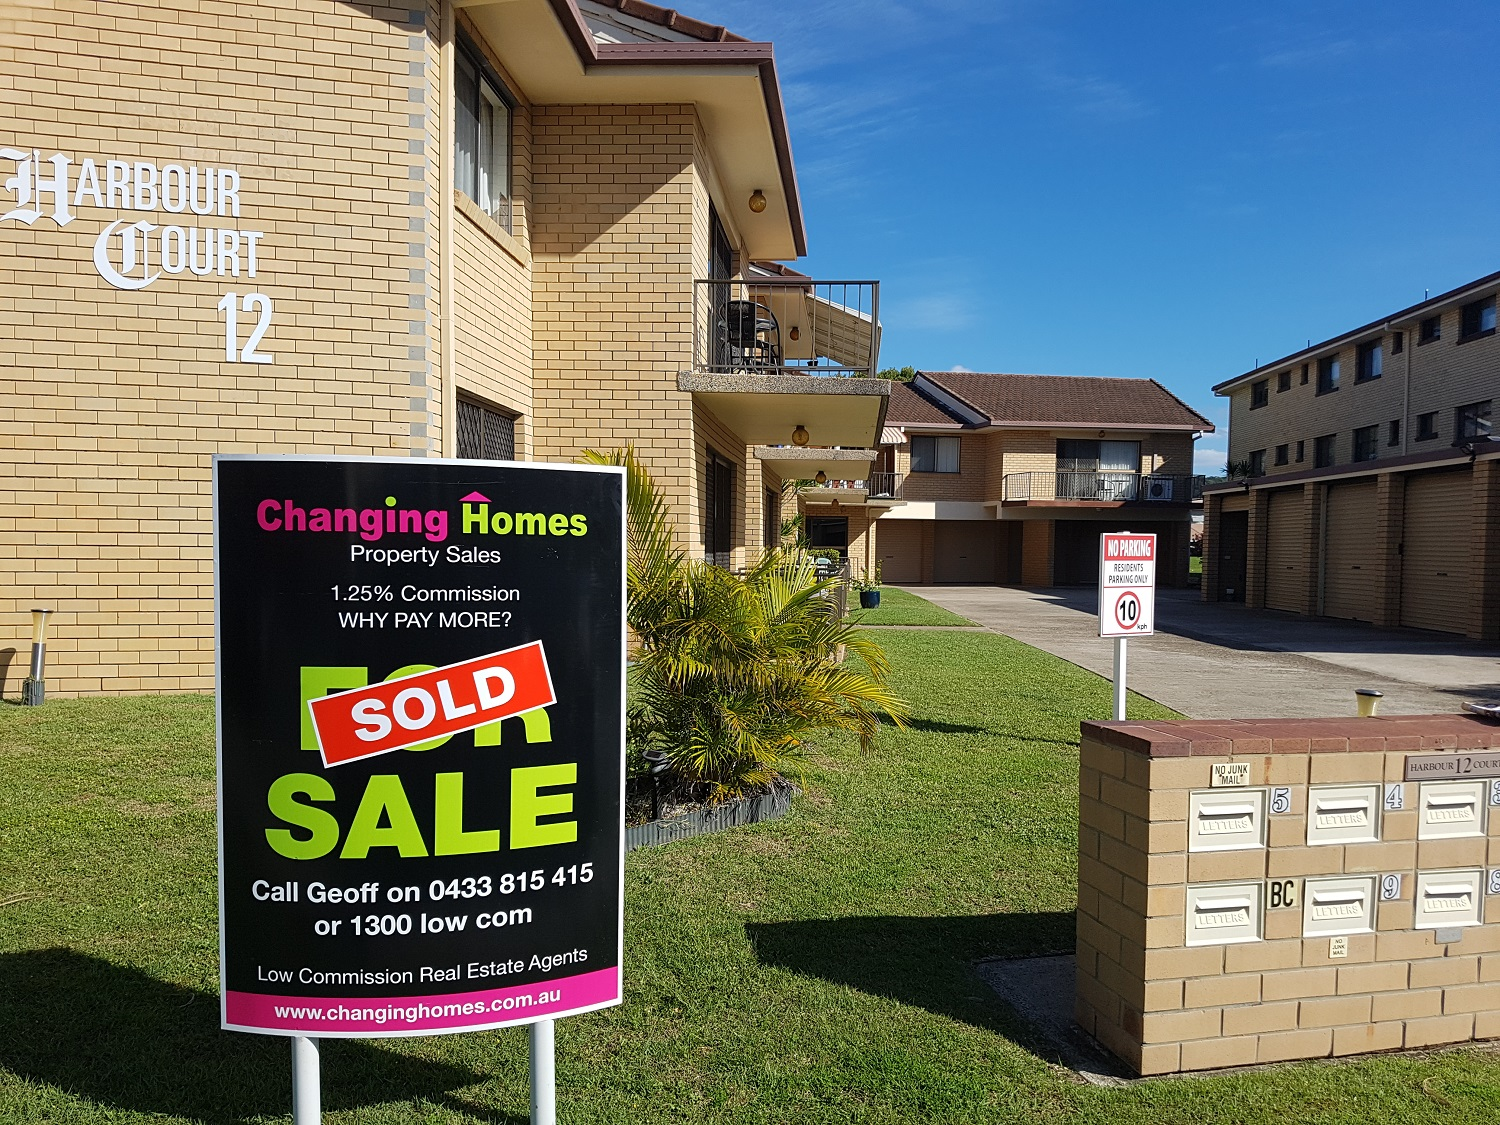 Sold by Geoff Muir Changing Homes Real Estate, Tweed Heads, Banora Point. Low commission real estate agents